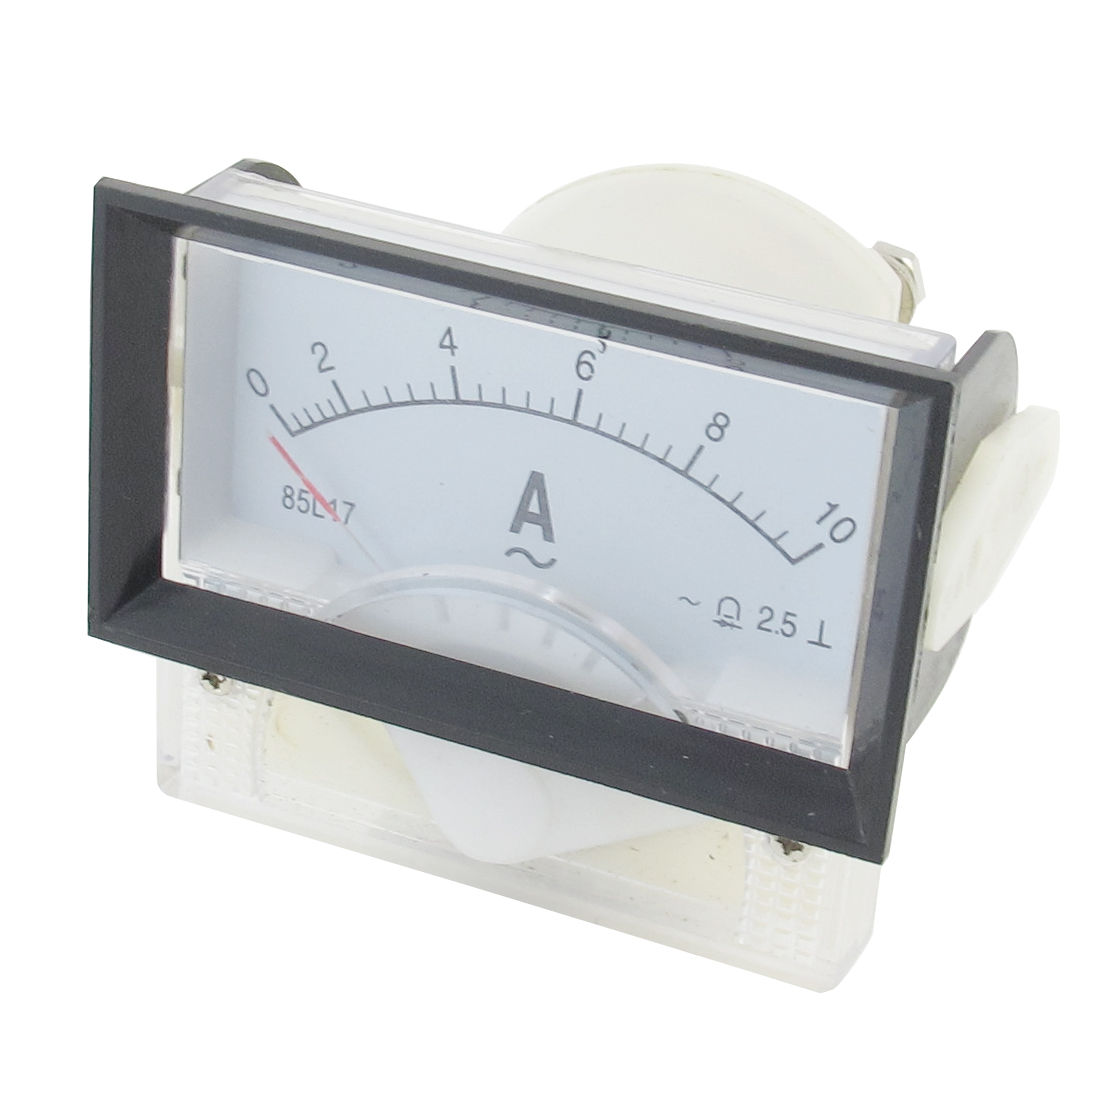 85L17 AC 0-10A 70mmx40mm Rectangular Analog Ampere Panel Meter Ammeter